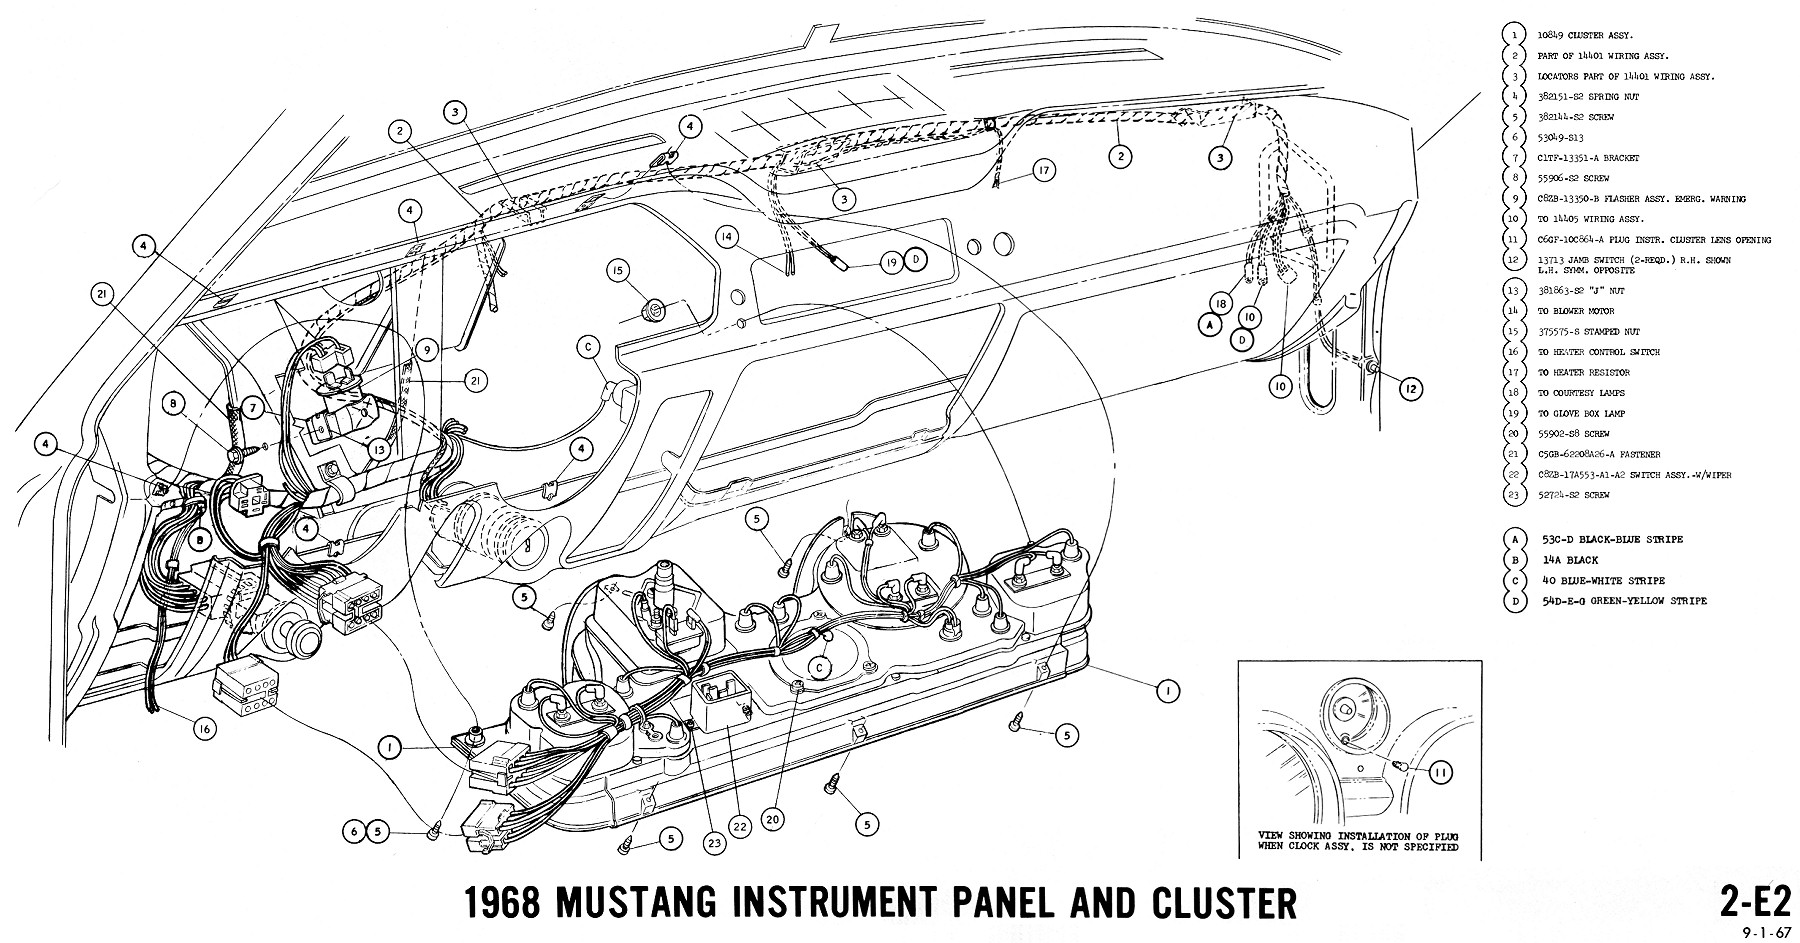 70 Mustang Guage Cluster Wiring Harness - Wiring Diagrams Database  diamondcarservice.it